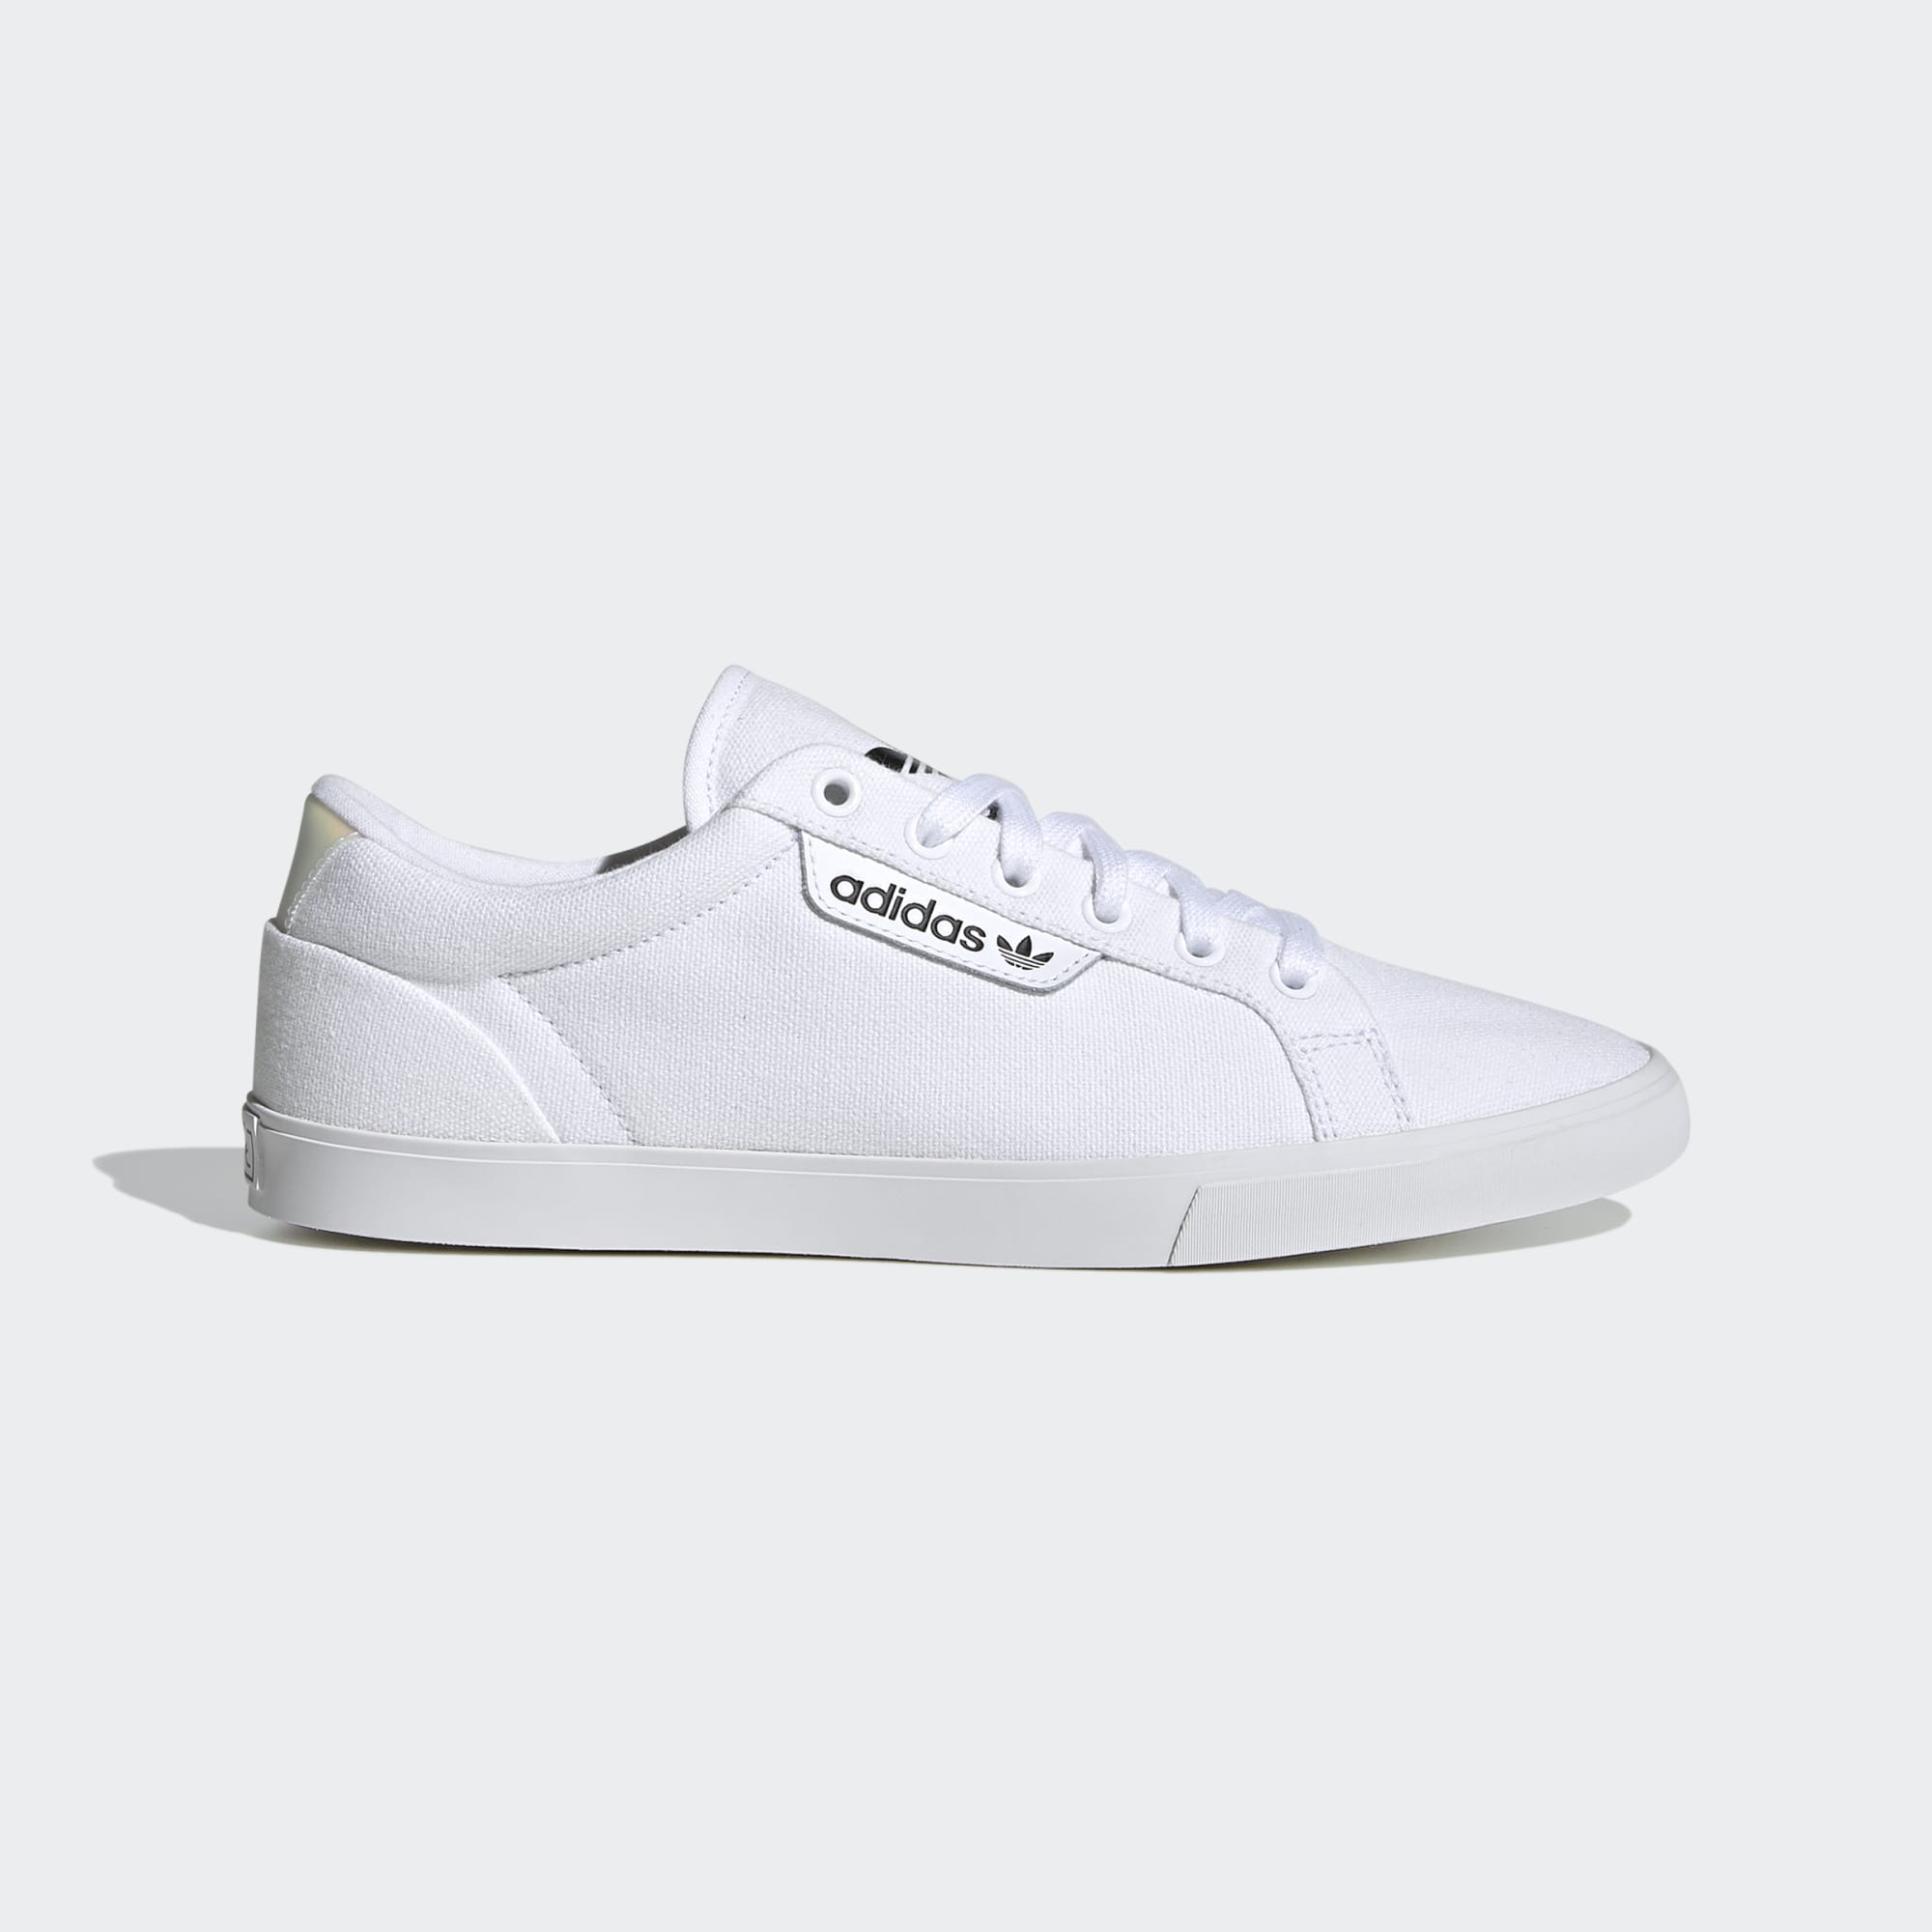 Adidas Womens Sleek Shoe - White | Shop Adidas at GOALS Arrowtown NZ